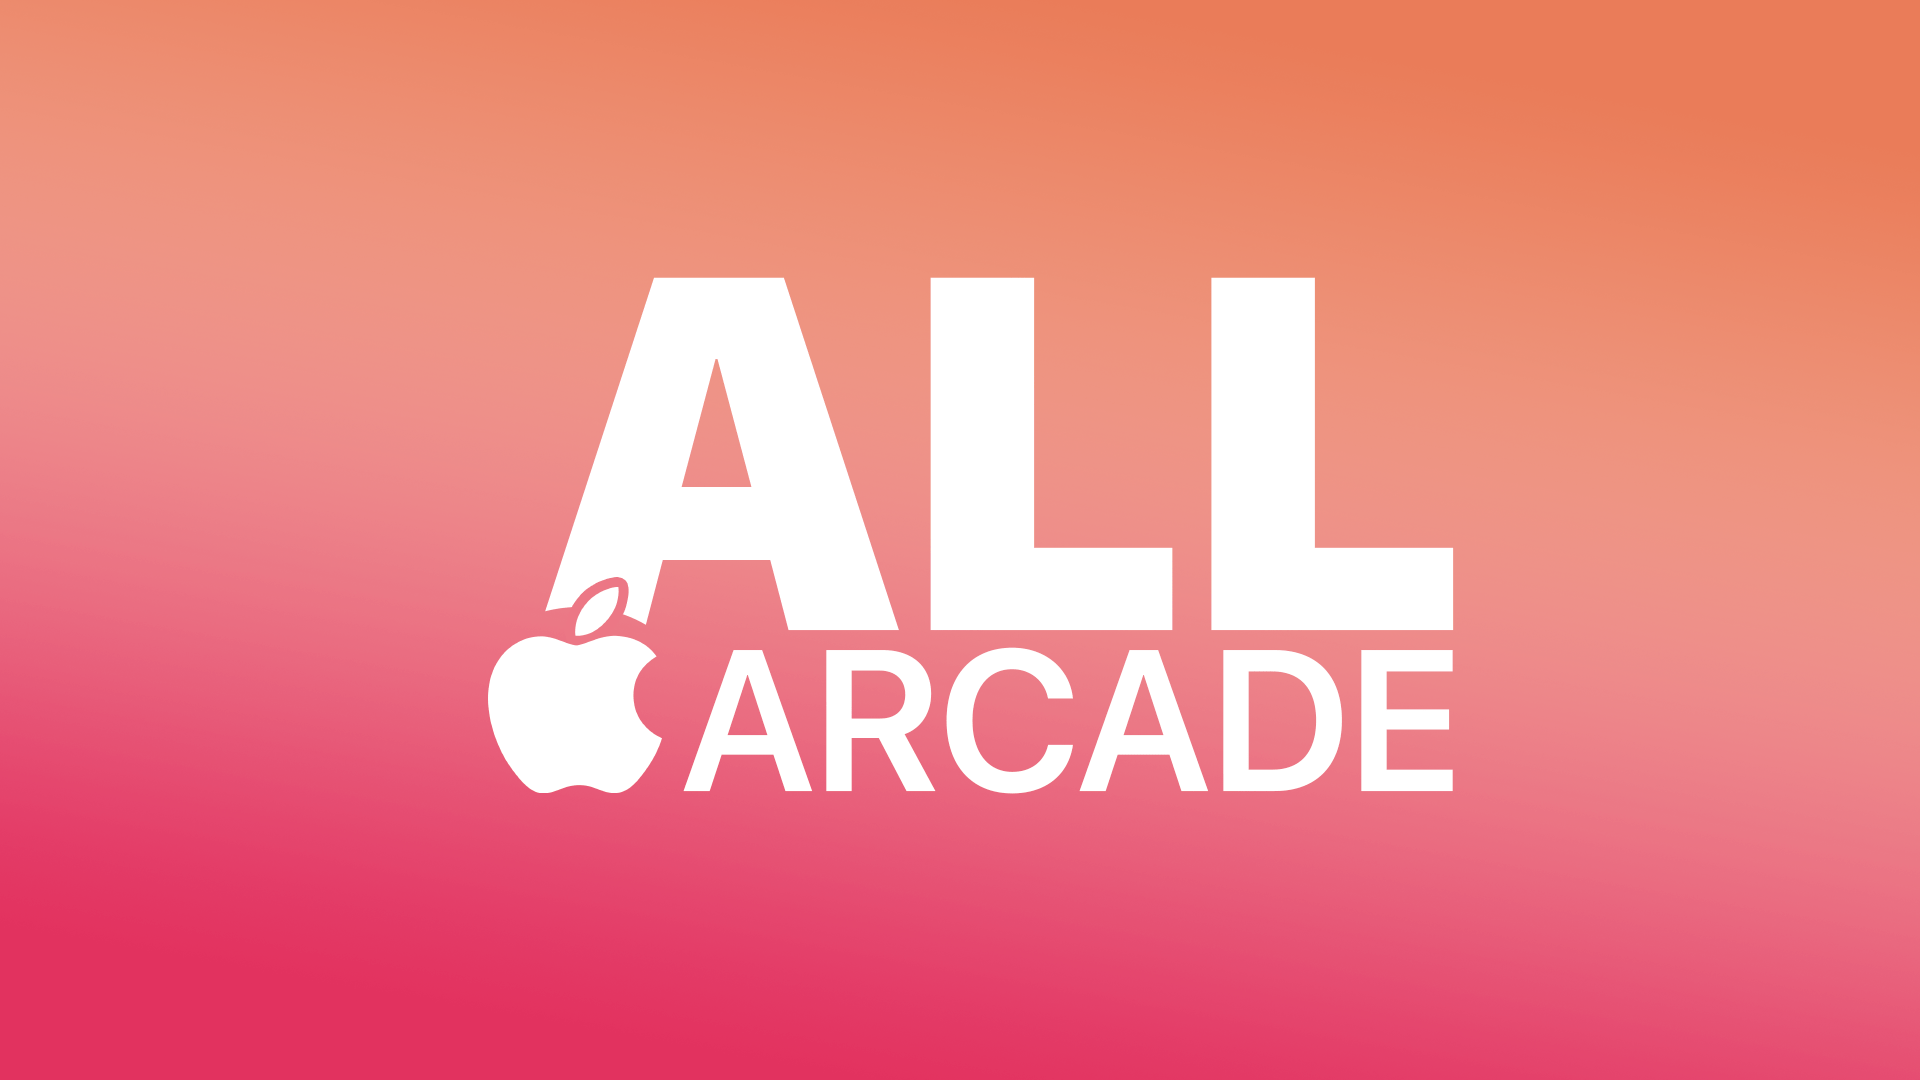 Apple Arcade updates Grindstone, Sociable Soccer 2020 and Explottens to play this weekend - CNET